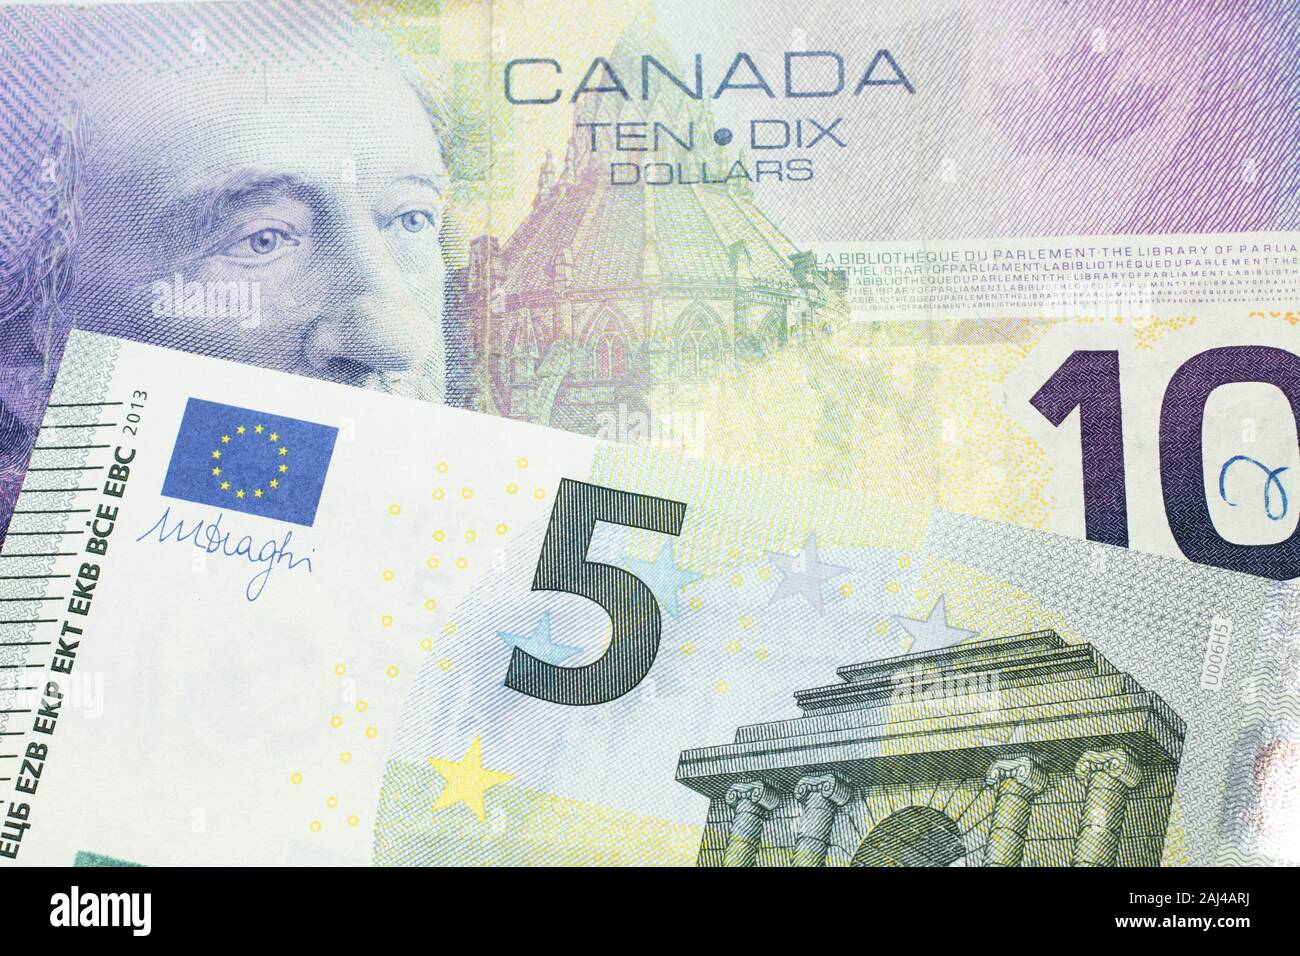 Mixed Dates Canadian Five Dollar Banknote lot